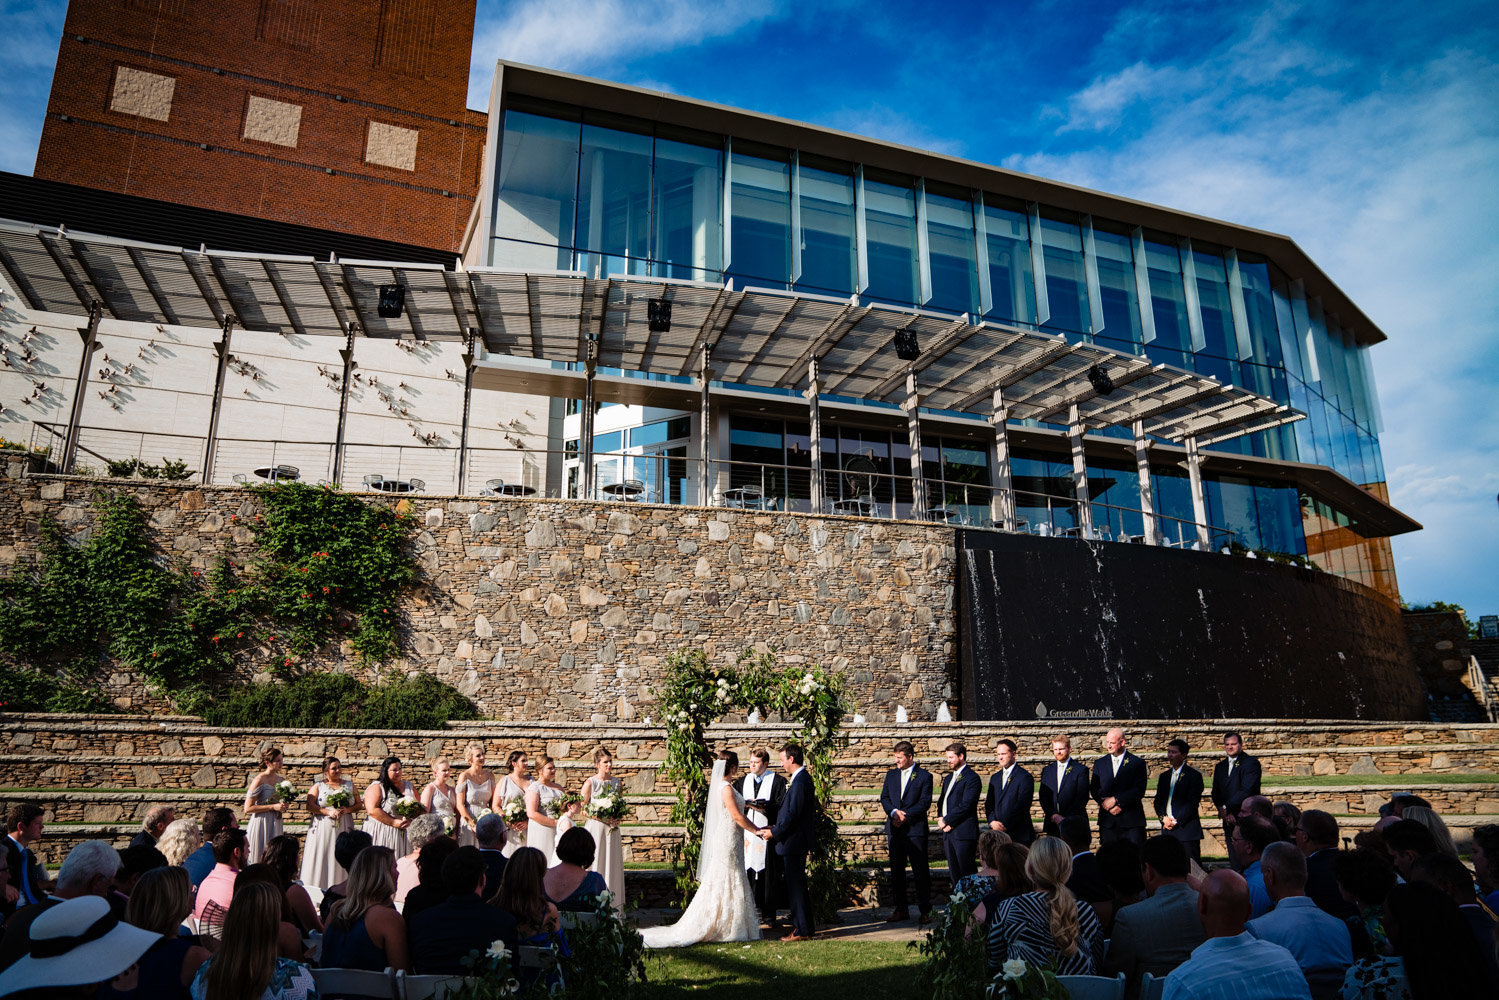 outdoor wedding ceremony near rock wall